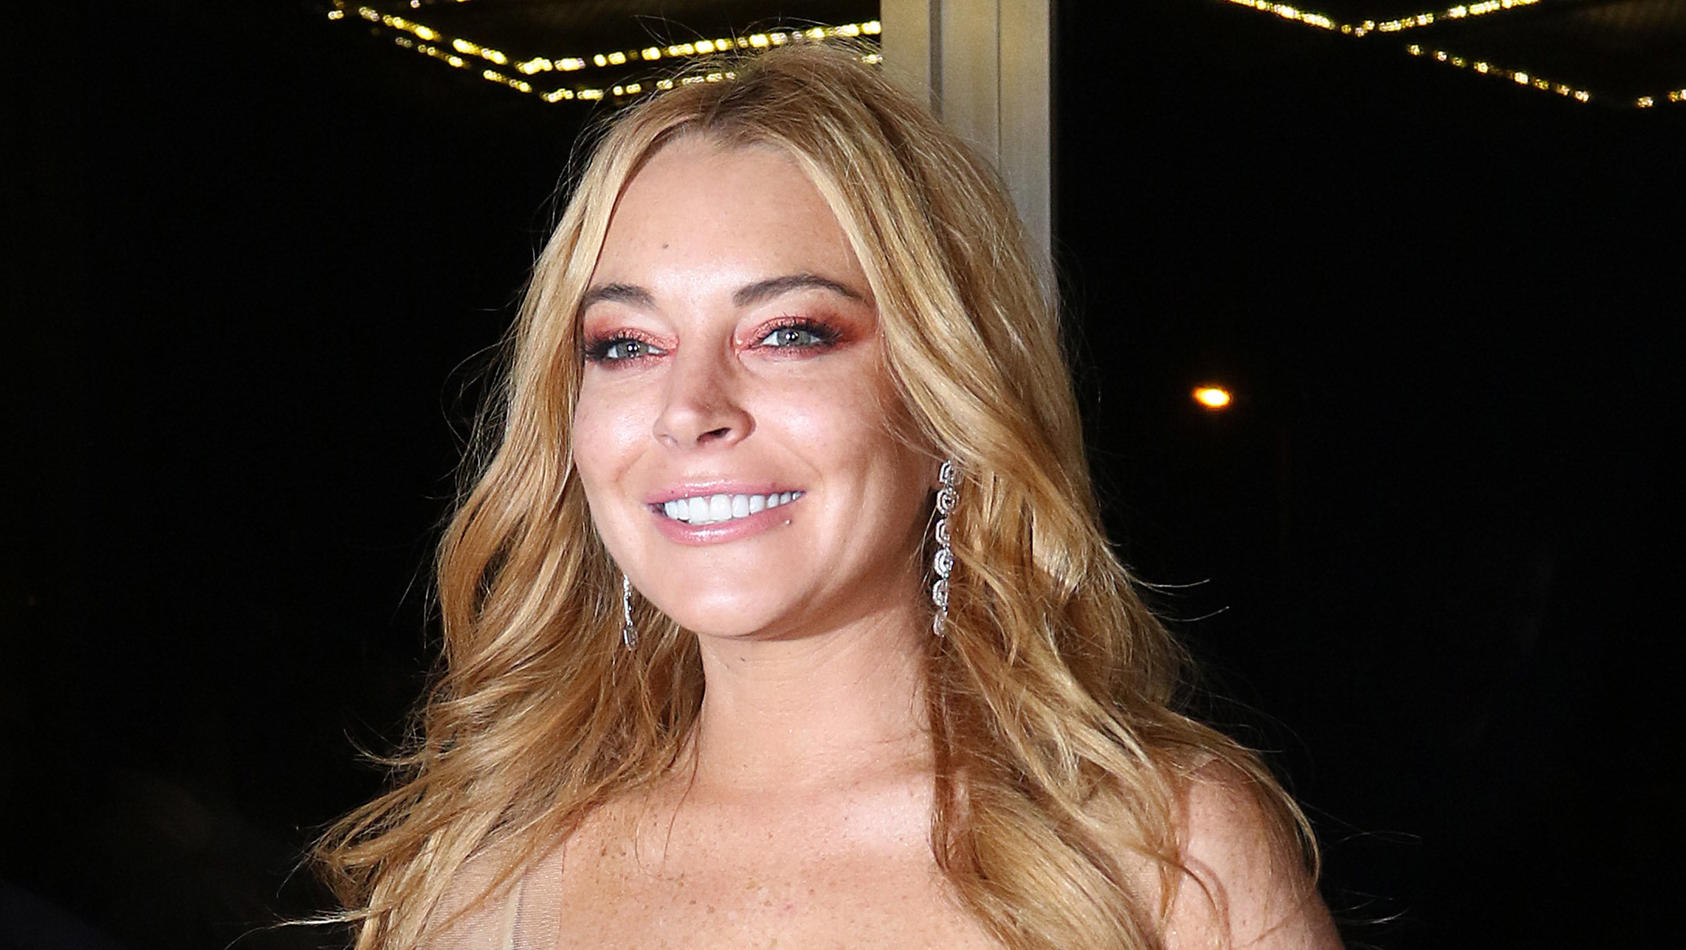 Lindsay Lohan attends the opening of her nightclub in Athens, Greece called 'Lohan'